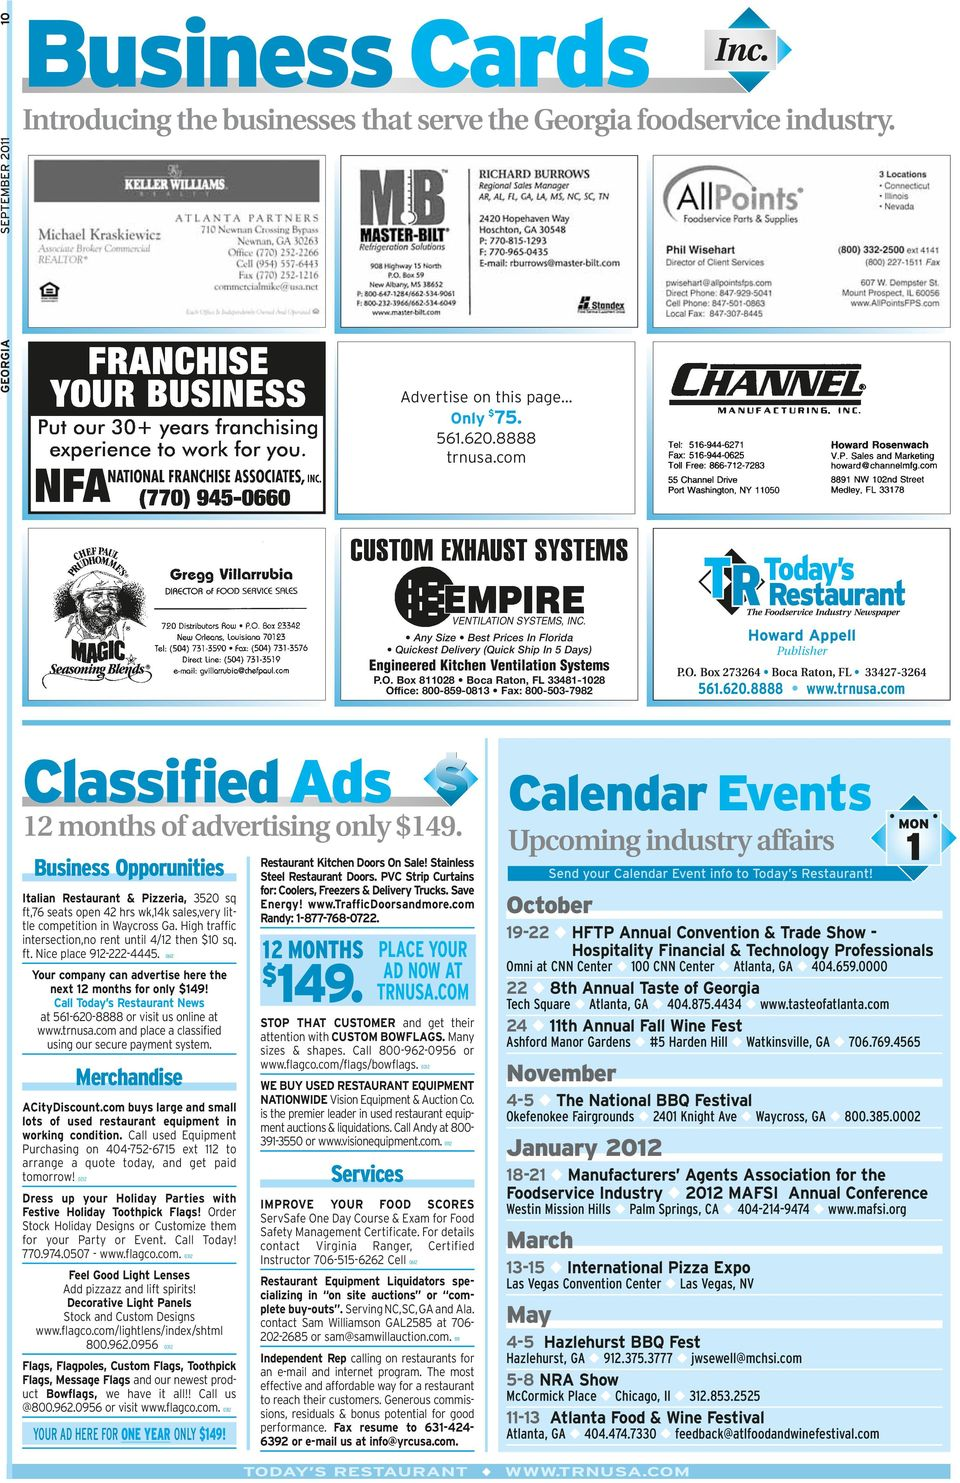 O. Box 273264 Boca Raton, FL 33427-3264 561.620.8888 www.trnusa.com Classified Ads 12 months of advertising only $149.